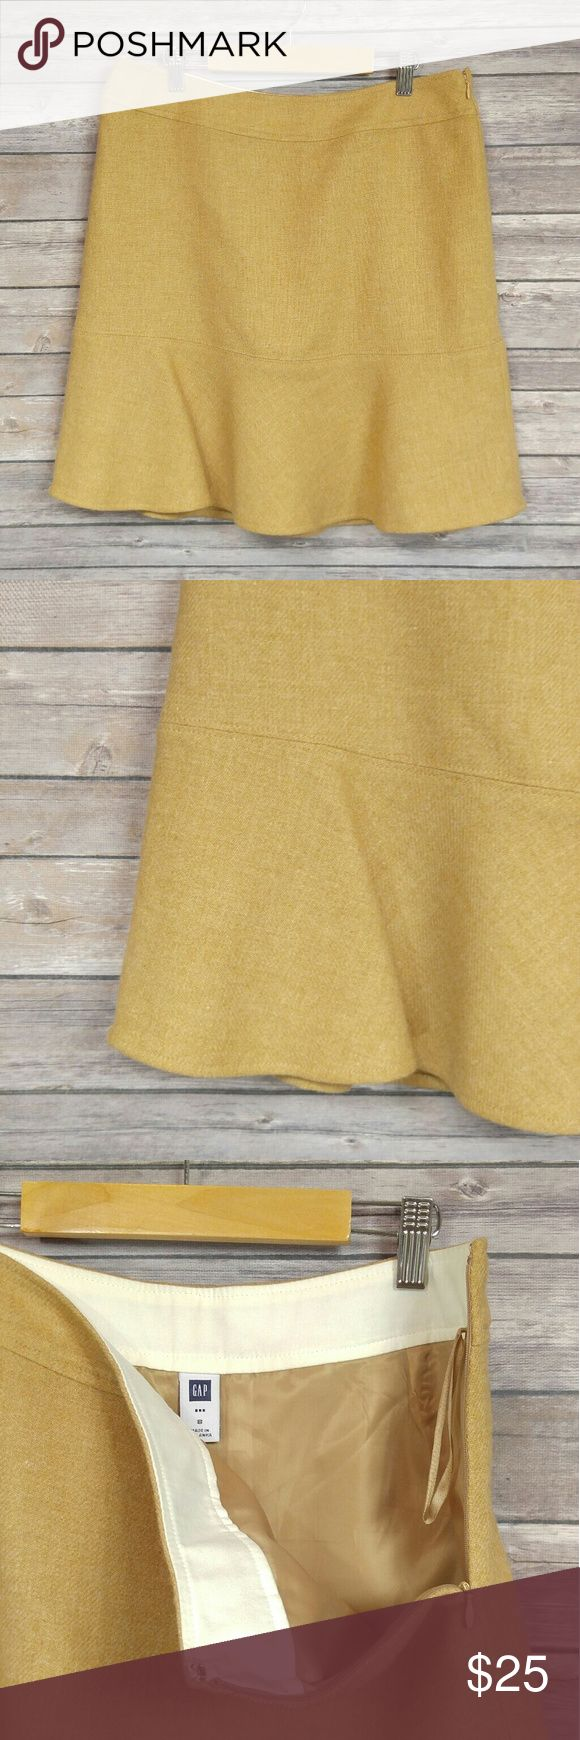 GAP tan wool trumpet skirt * Very fall like skirt * Wear with tights and a pair of Oxford heels * Zipper closure on side * Trumpet shape skirt * 90% wool 10% nylon, 100% polyester lining * Dry clean * Waist: 16 in. * Length: 20 in. GAP Skirts